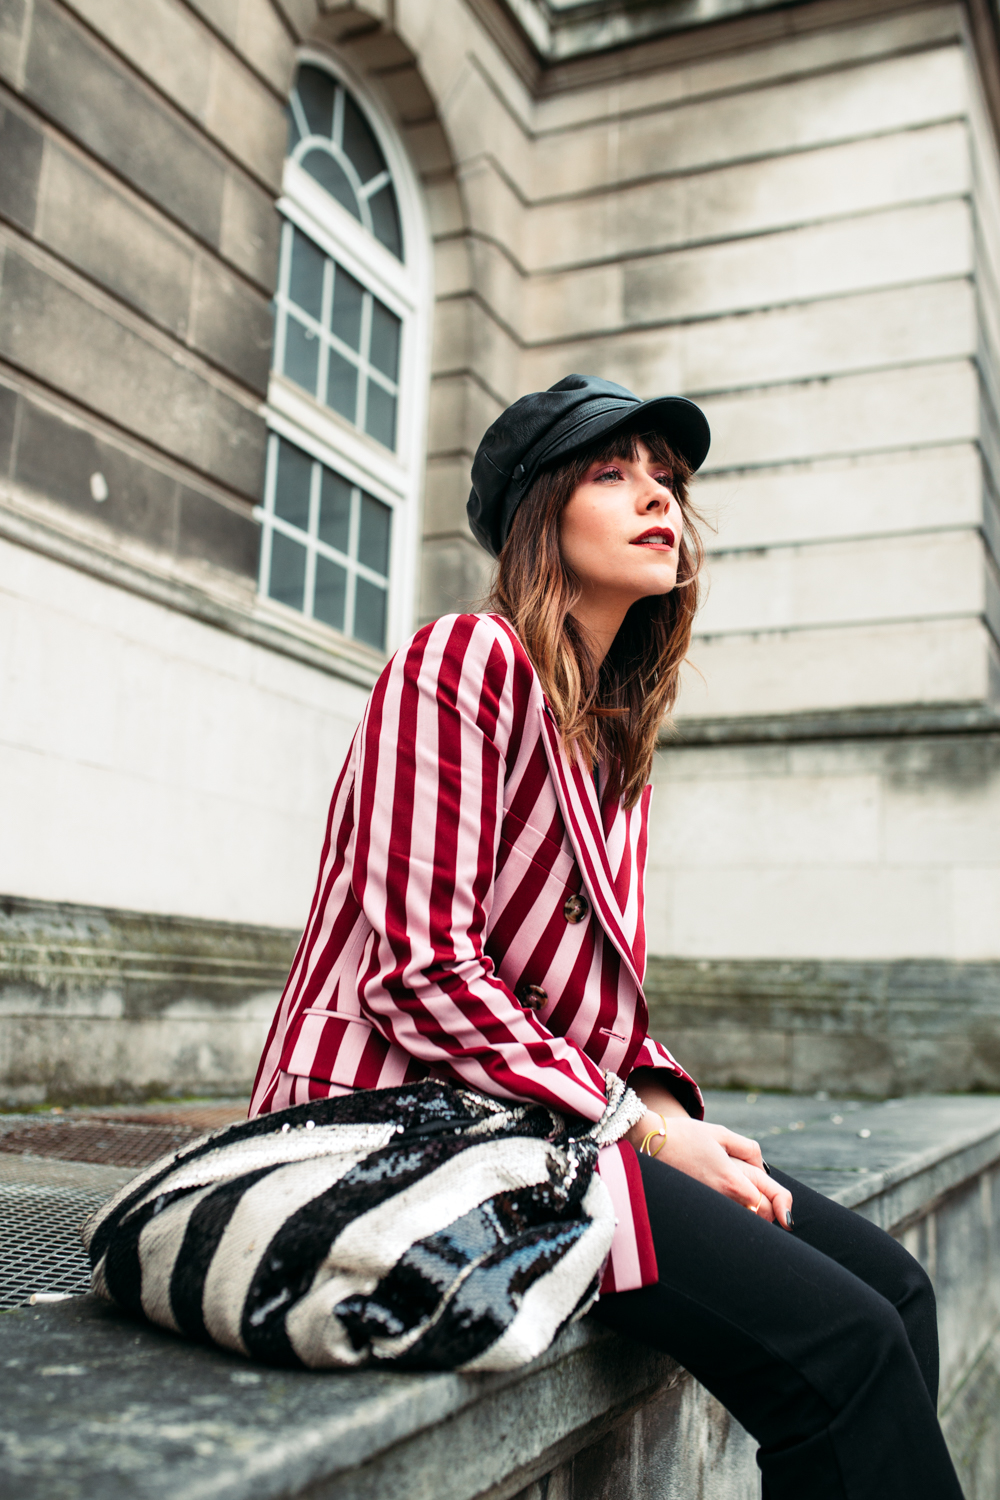 MEGAN ELLABY HOW TO WEAR DOUBLE STRIPES